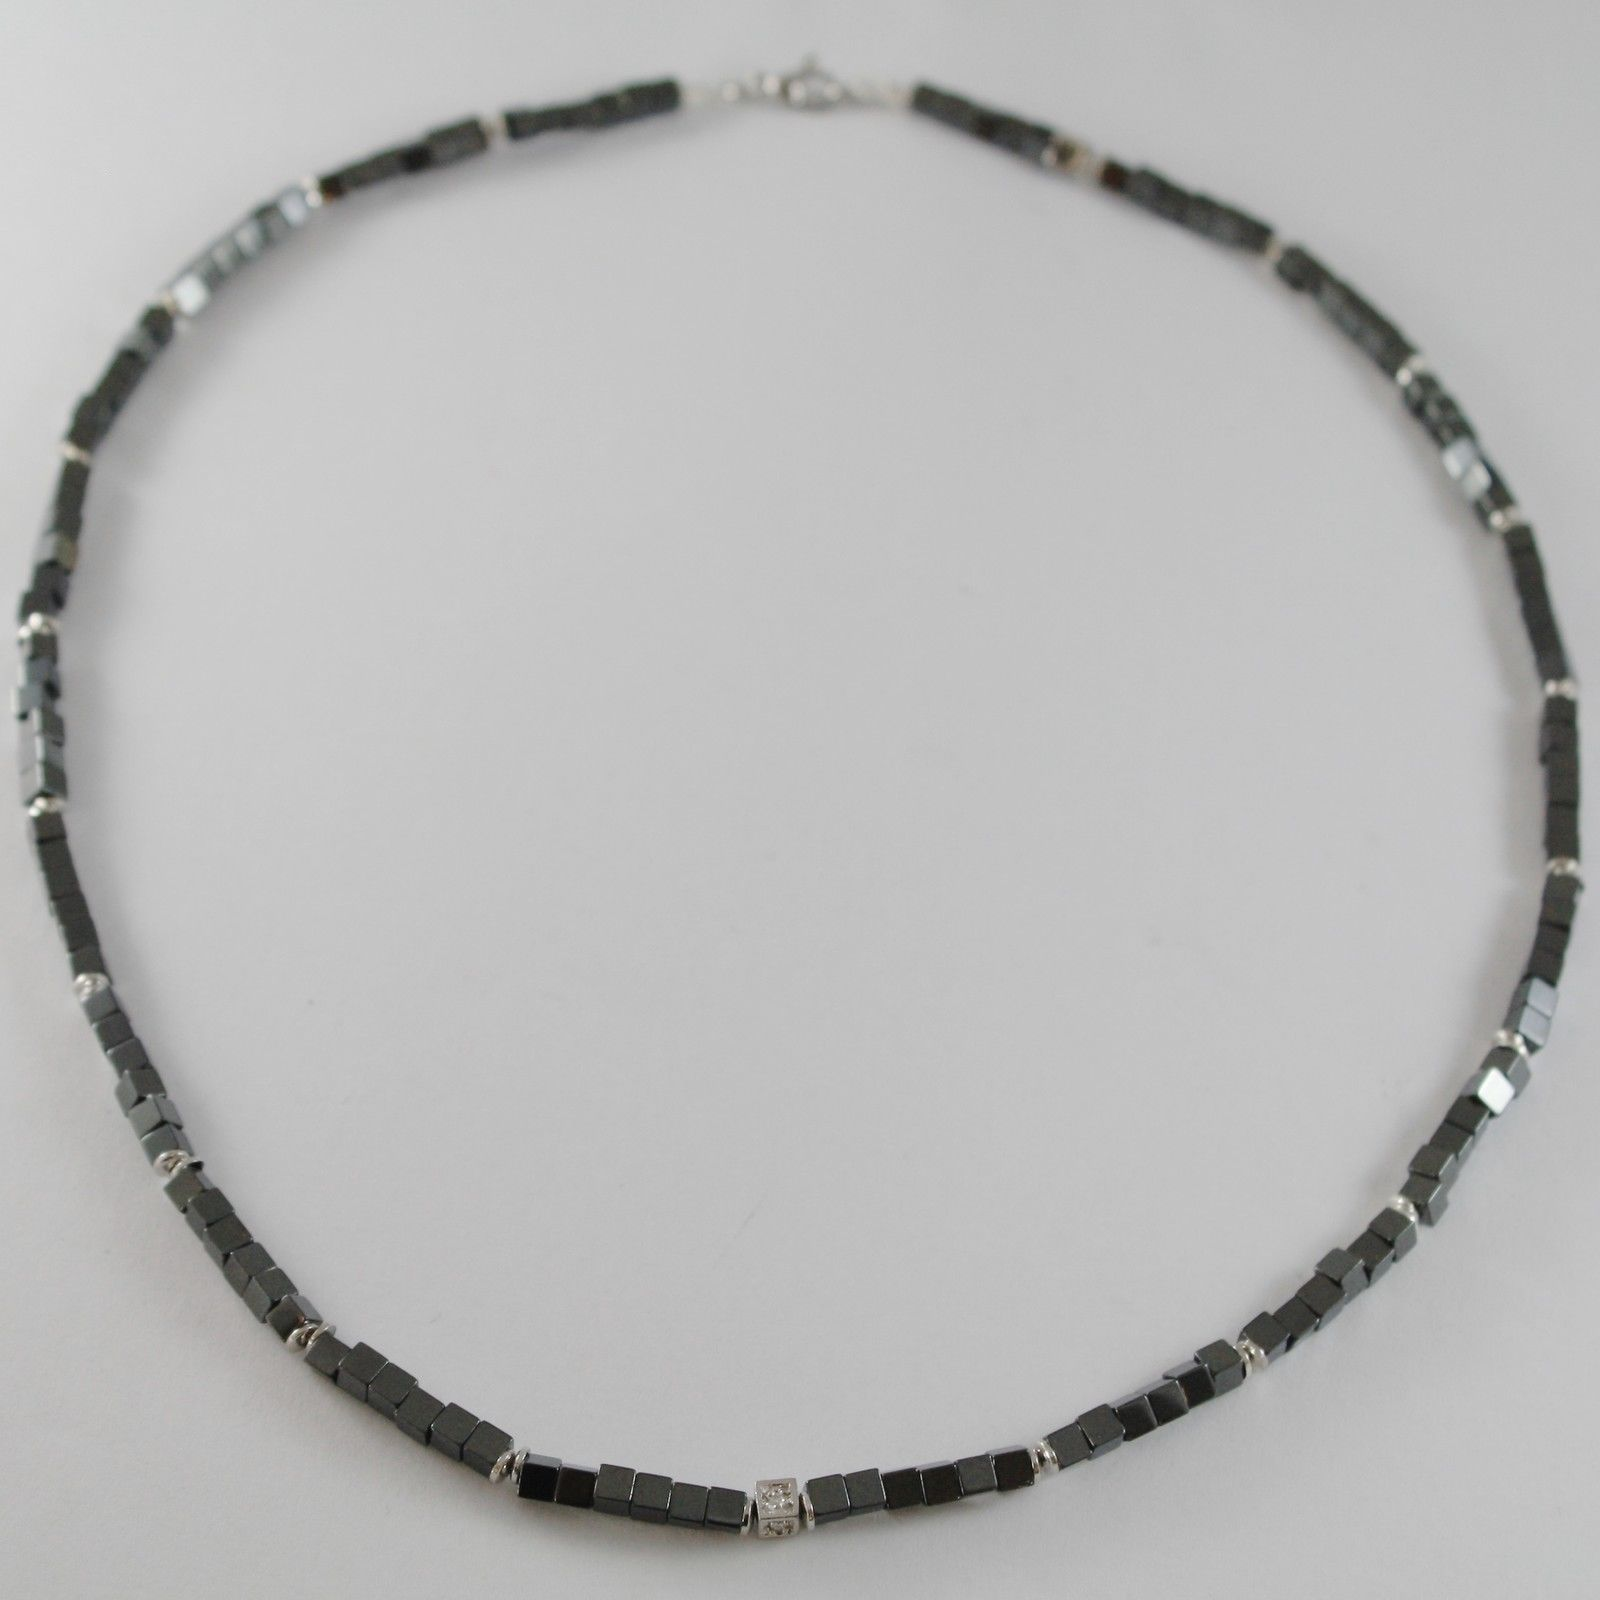 COLLIER GIADAN EN ARGENT 925 HÉMATITE POLIT ET 8 DIAMANTS BLANC MADE IN ITALY